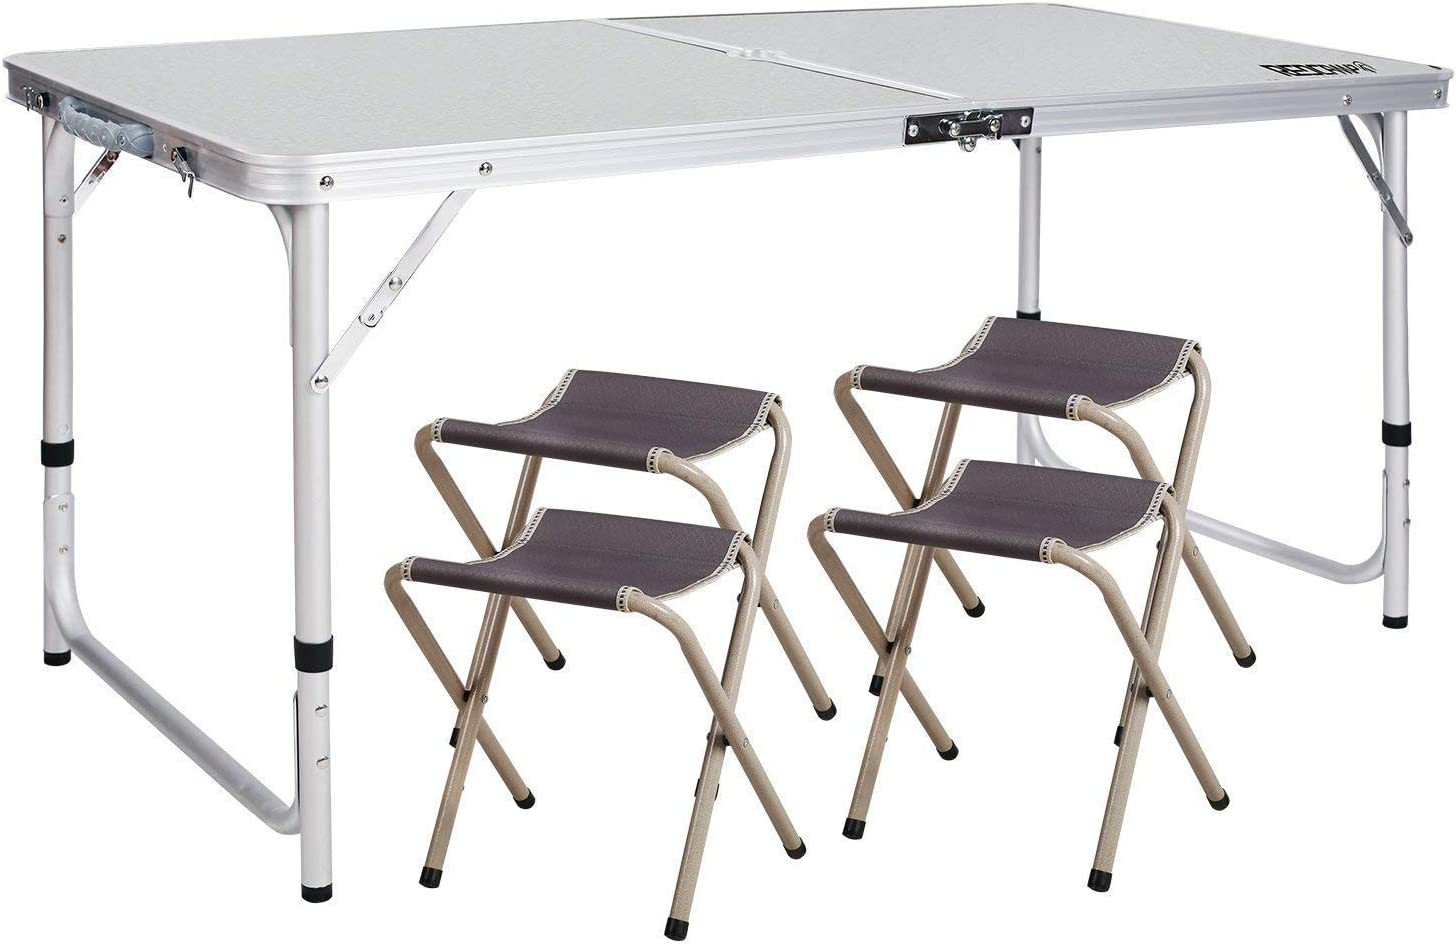 REDCAMP Outdoor Picnic Table Adjustable, Folding Camping Table with 4 Chairs, Aluminum White 47.2 x23.6 x27